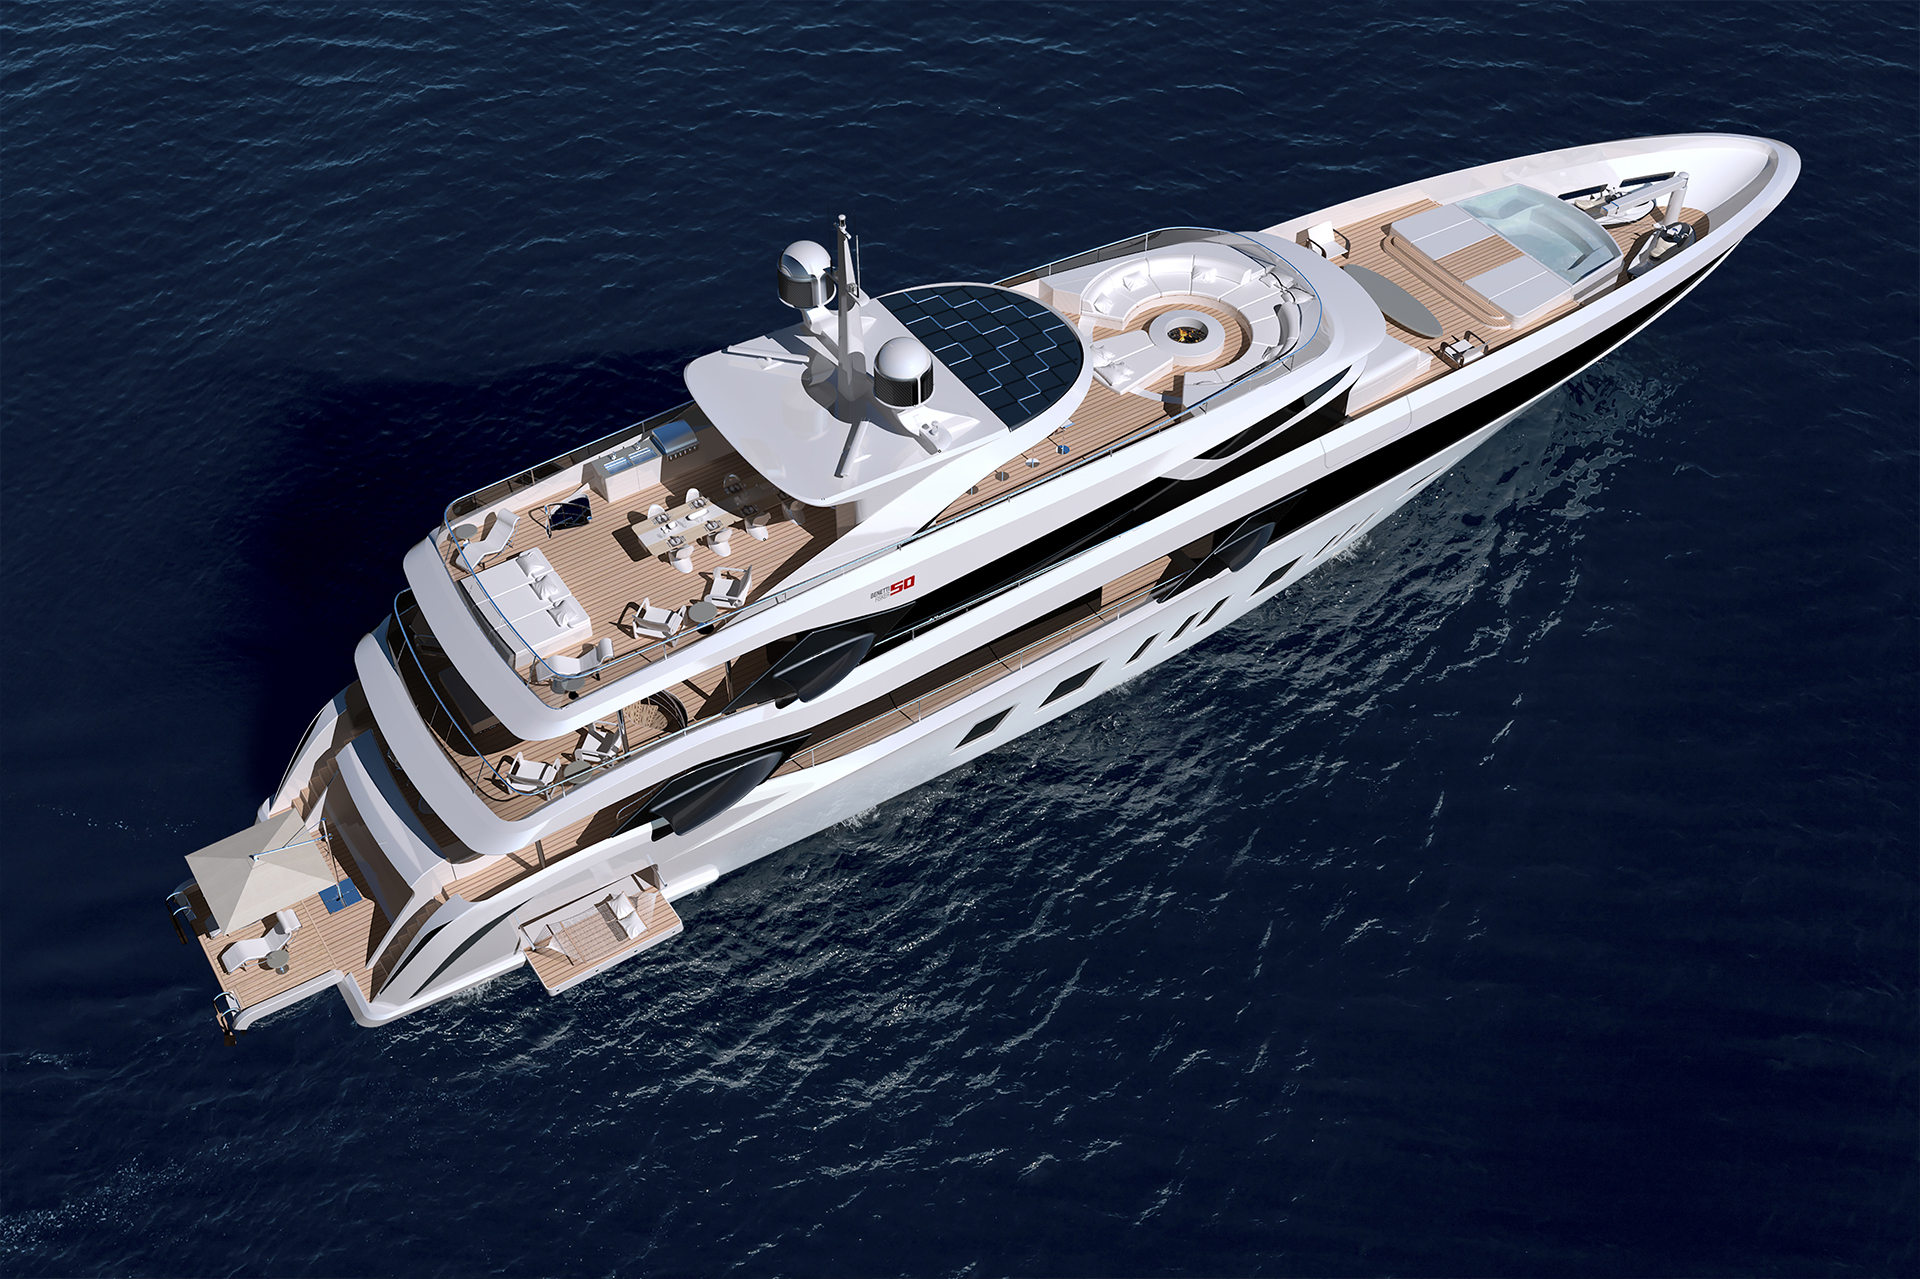 "<span class=""caption"">Top view of a super yacht designed by Henrik Fisker in partnership with shipbuilder Benetti. Courtesy of Henrik Fisker</span>"